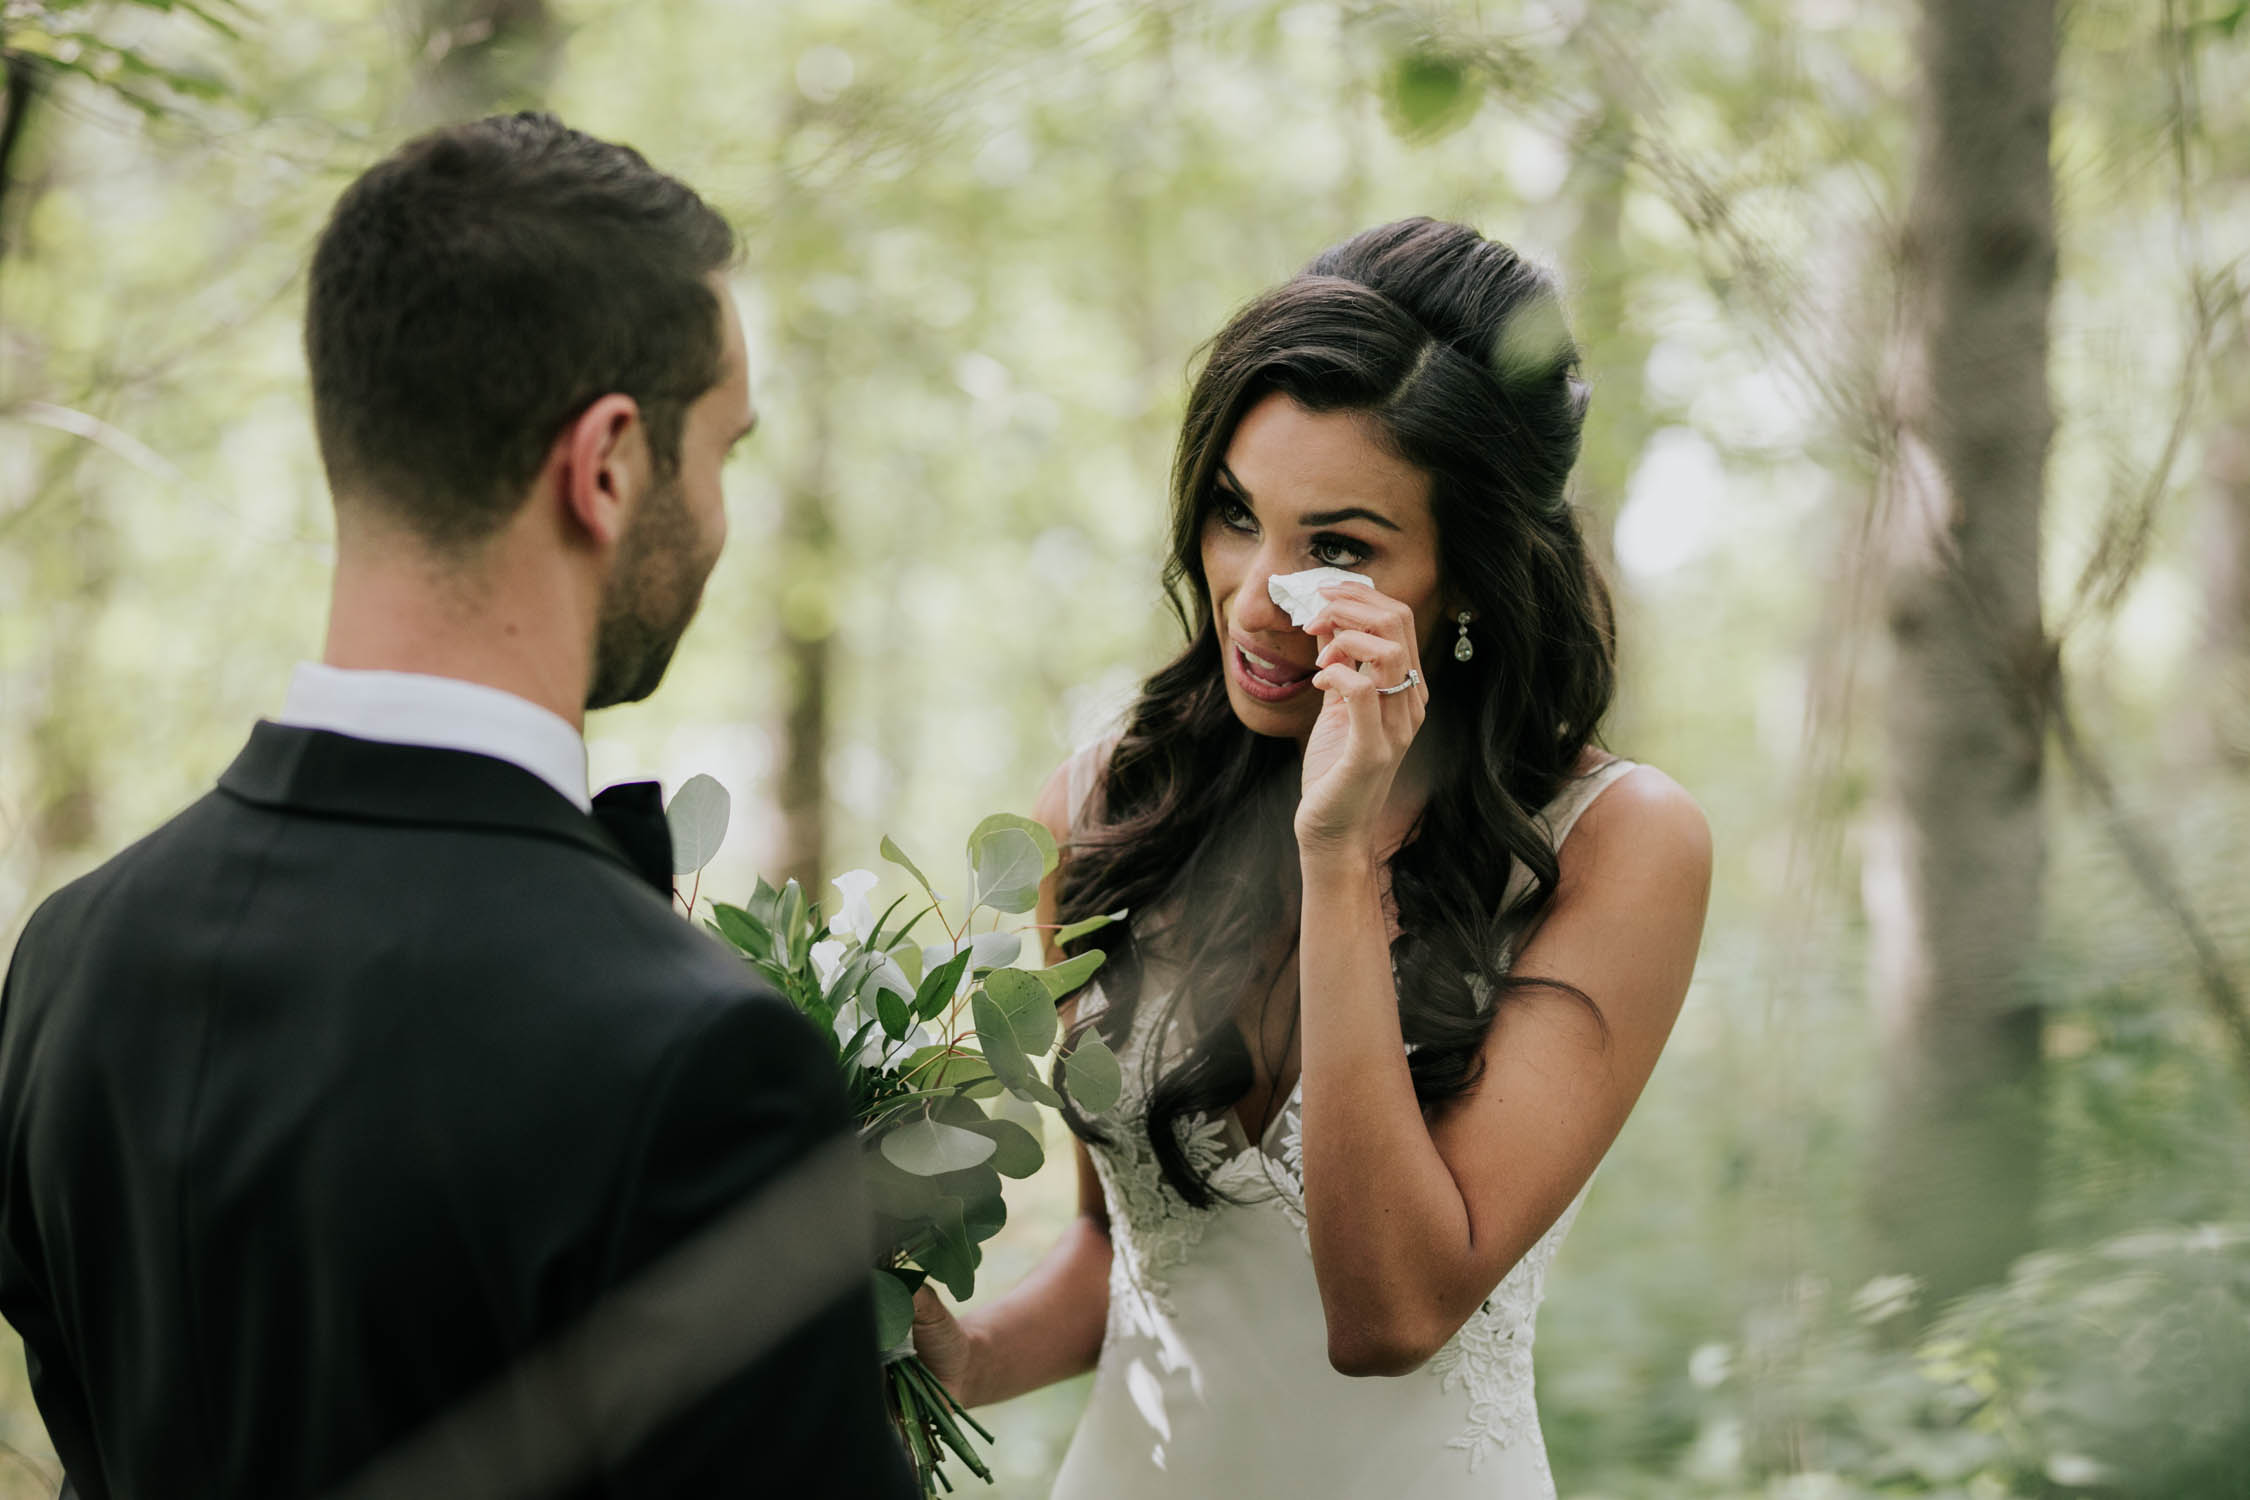 Bride crying as she sees her groom for the first time at their first look reveal in the forest at Fairy Lake Park in Newmarket before their wedding at Madsen's Greenhouse